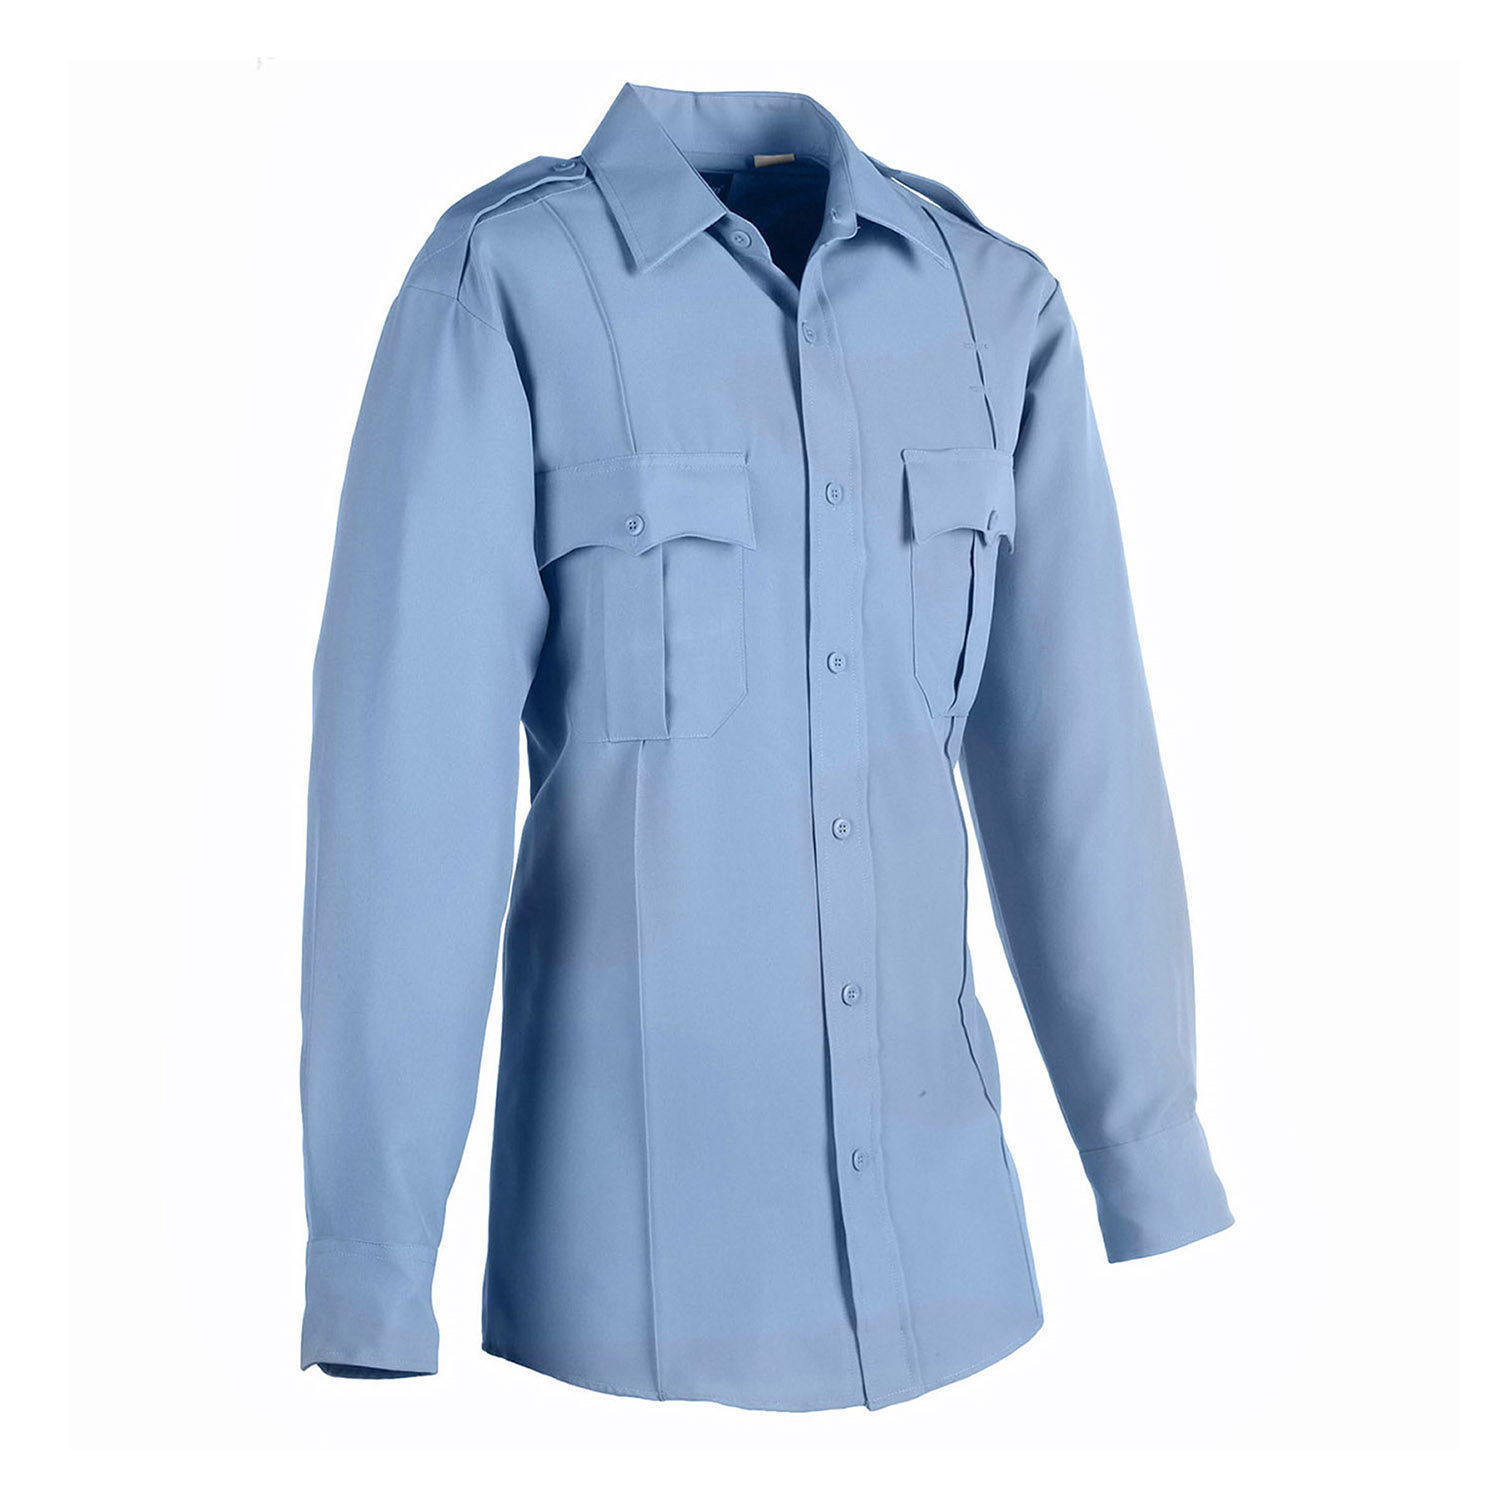 LawPro 100% Polyester Long Sleeve Premium Shirt